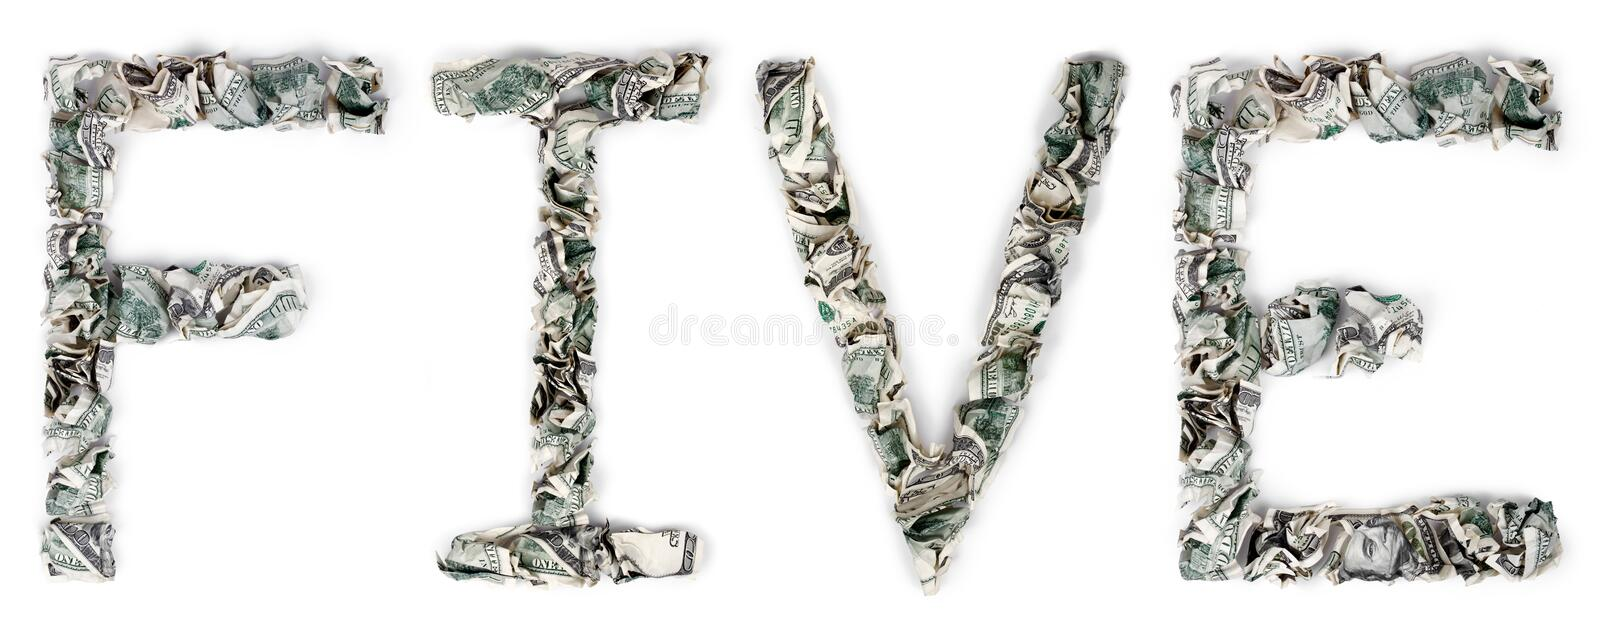 Download Five - Crimped 100$ Bills stock photo. Image of letter - 29908302